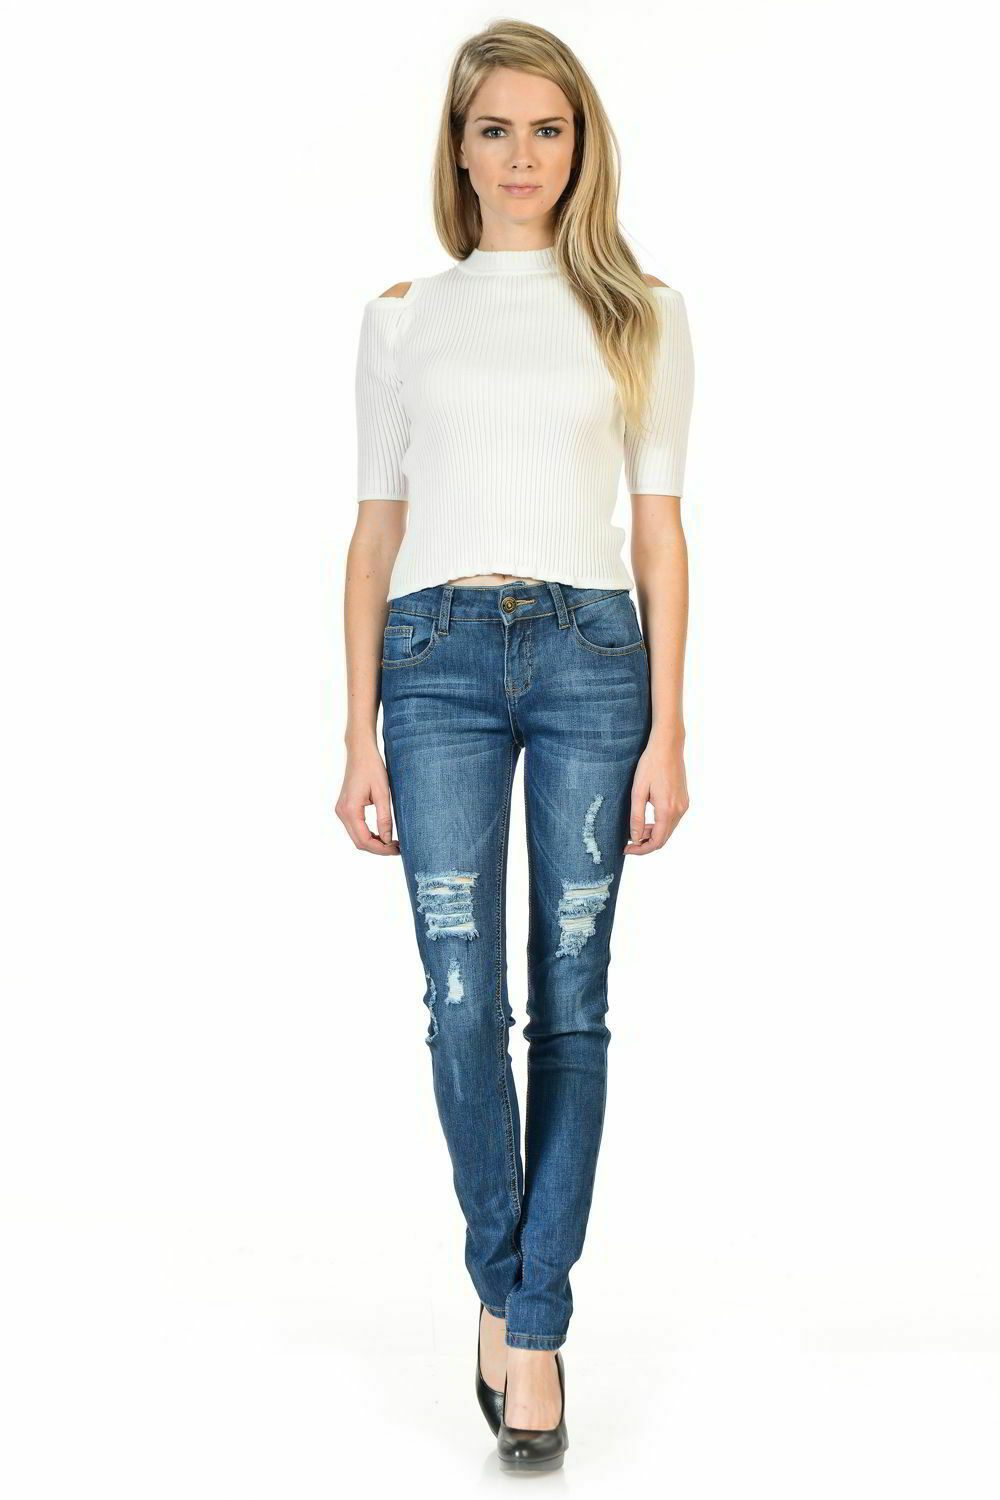 Sweet Look Premium Edition Women's Jeans - Skinny - Style M511-R